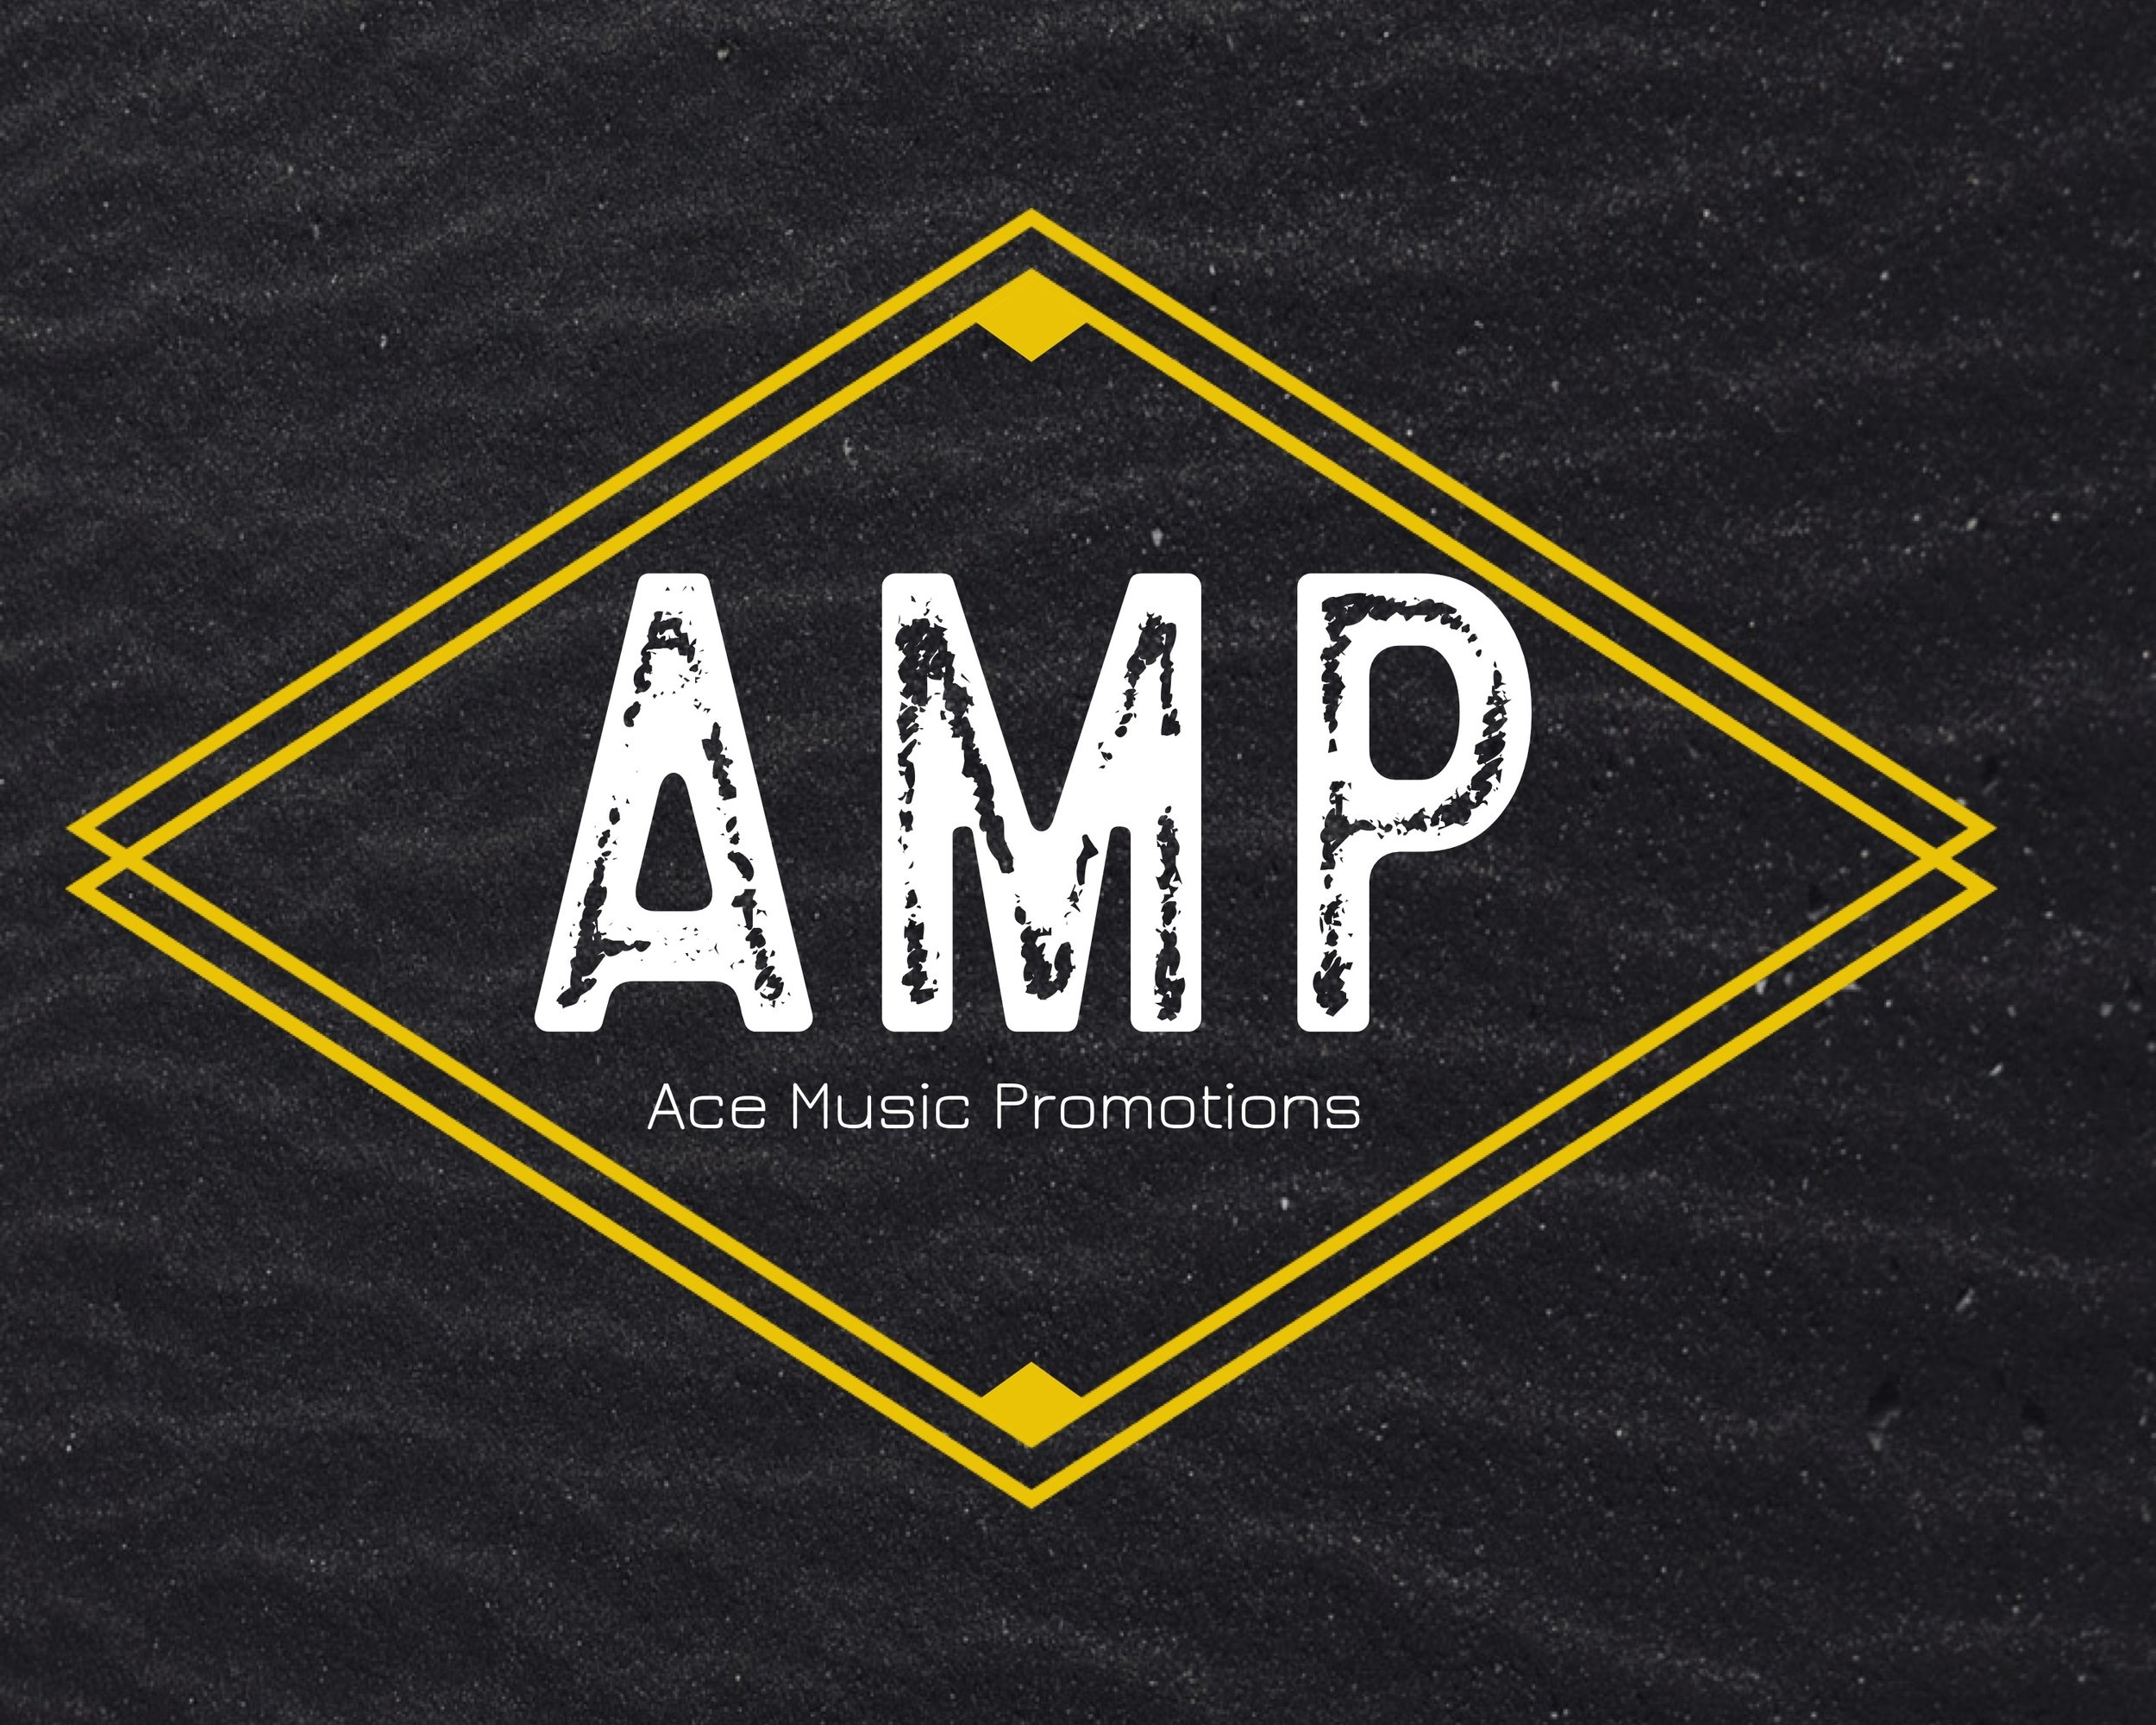 Ace Music Promotions - AMP is a promotions company focused on supporting and encouraging independent artists and songwriters.